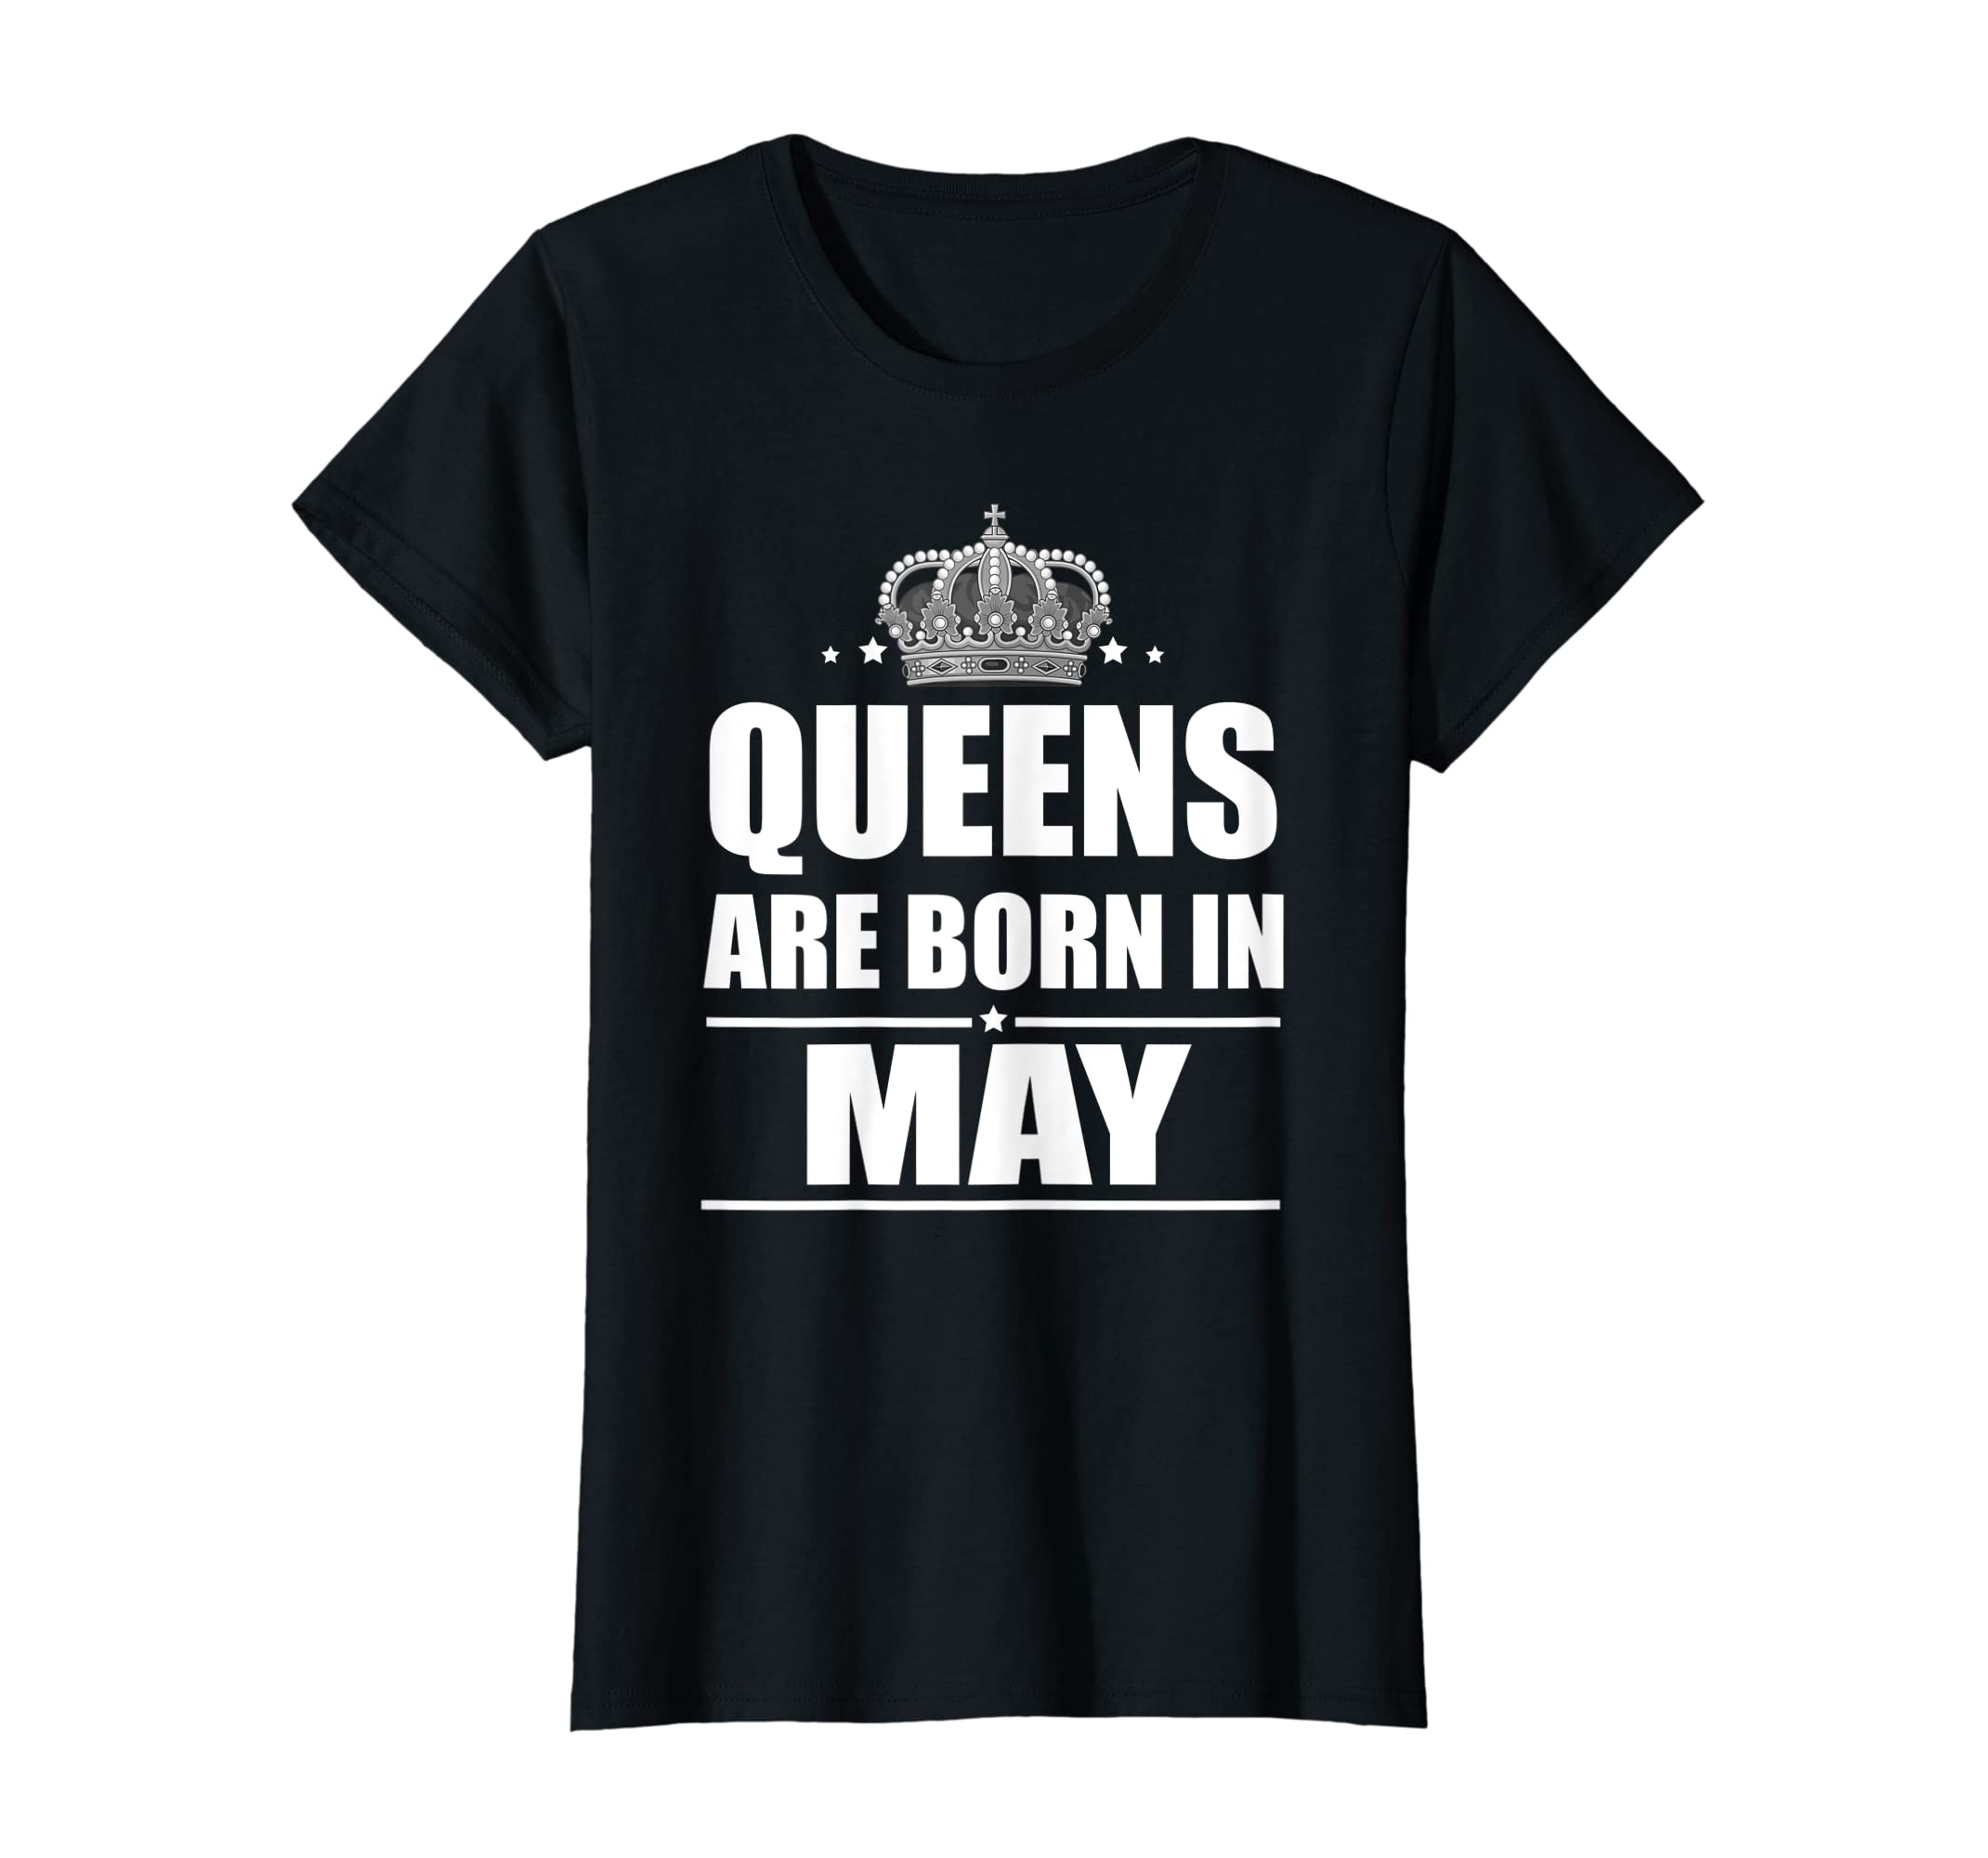 dc87baf8 Amazon.com: Queens Are Born In May - Gift Birthday T-Shirt: Clothing